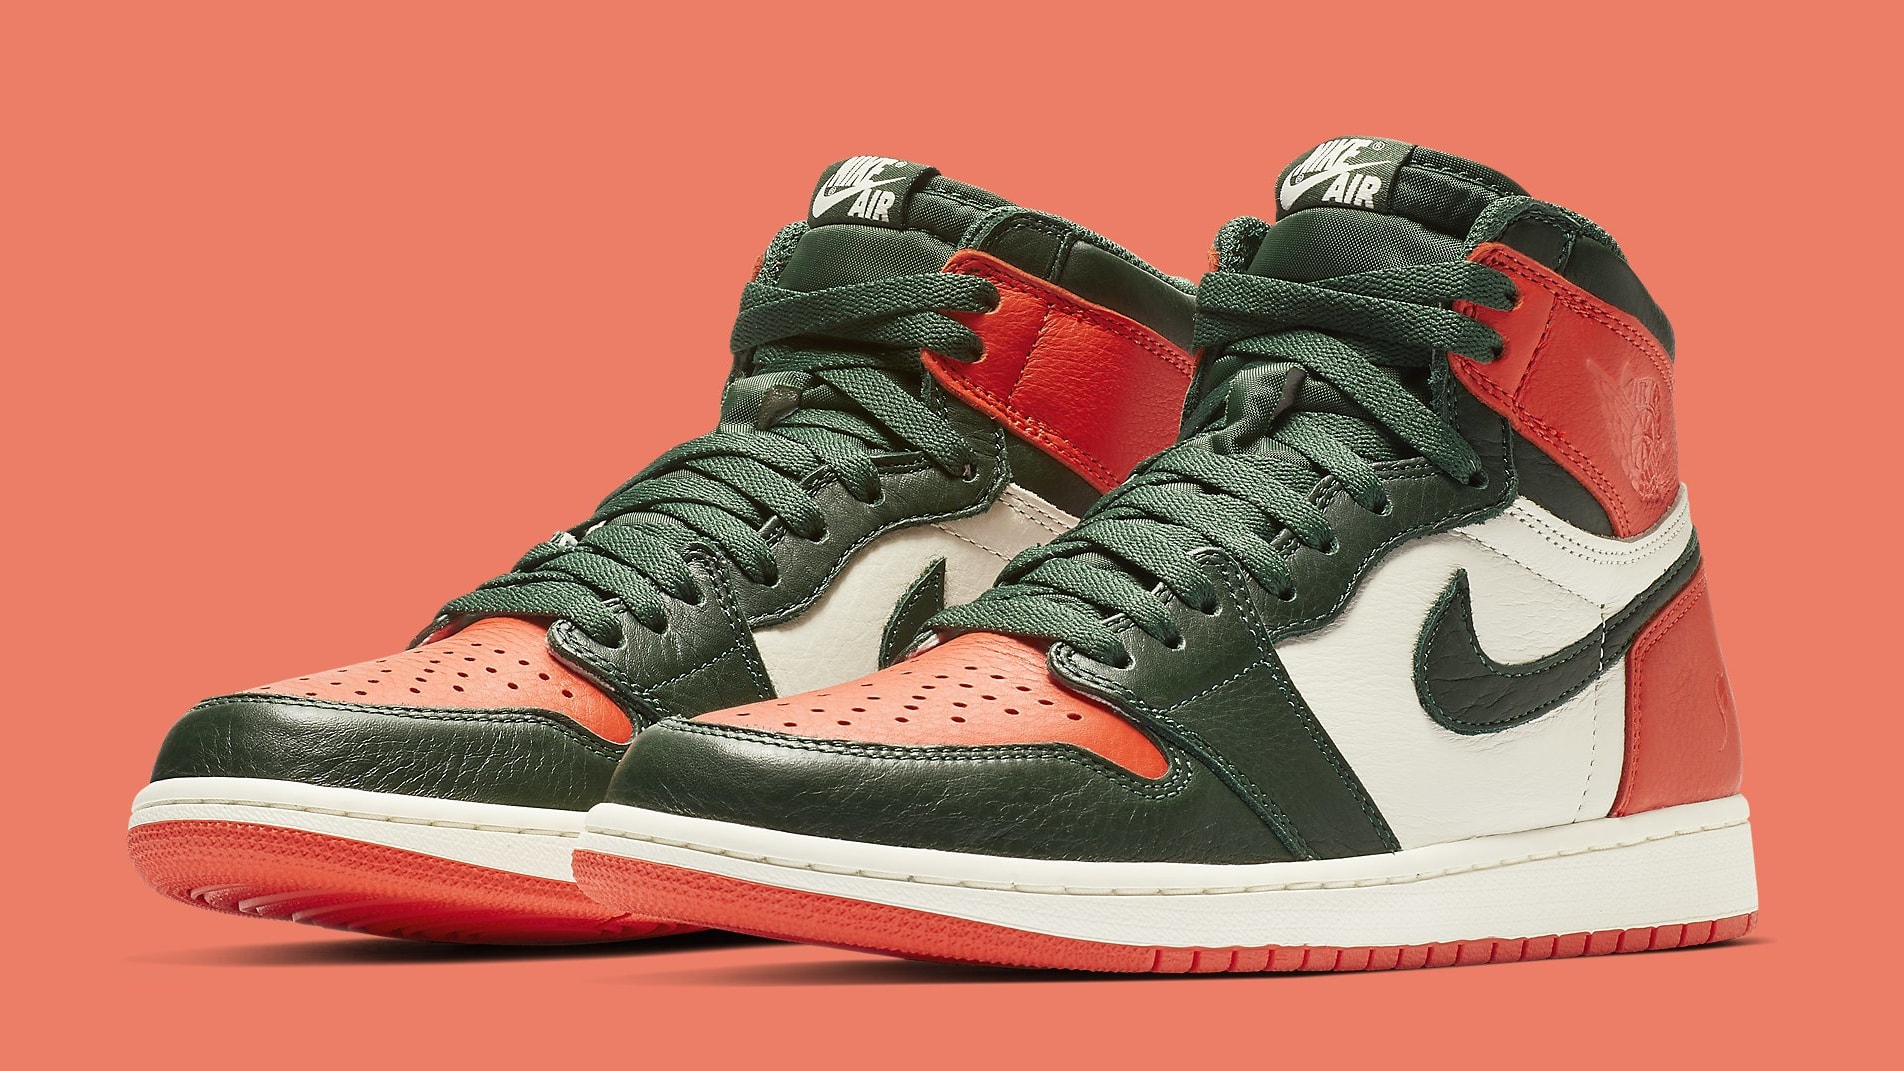 These Were the Most Valuable Sneakers to Resell in Q4 2018